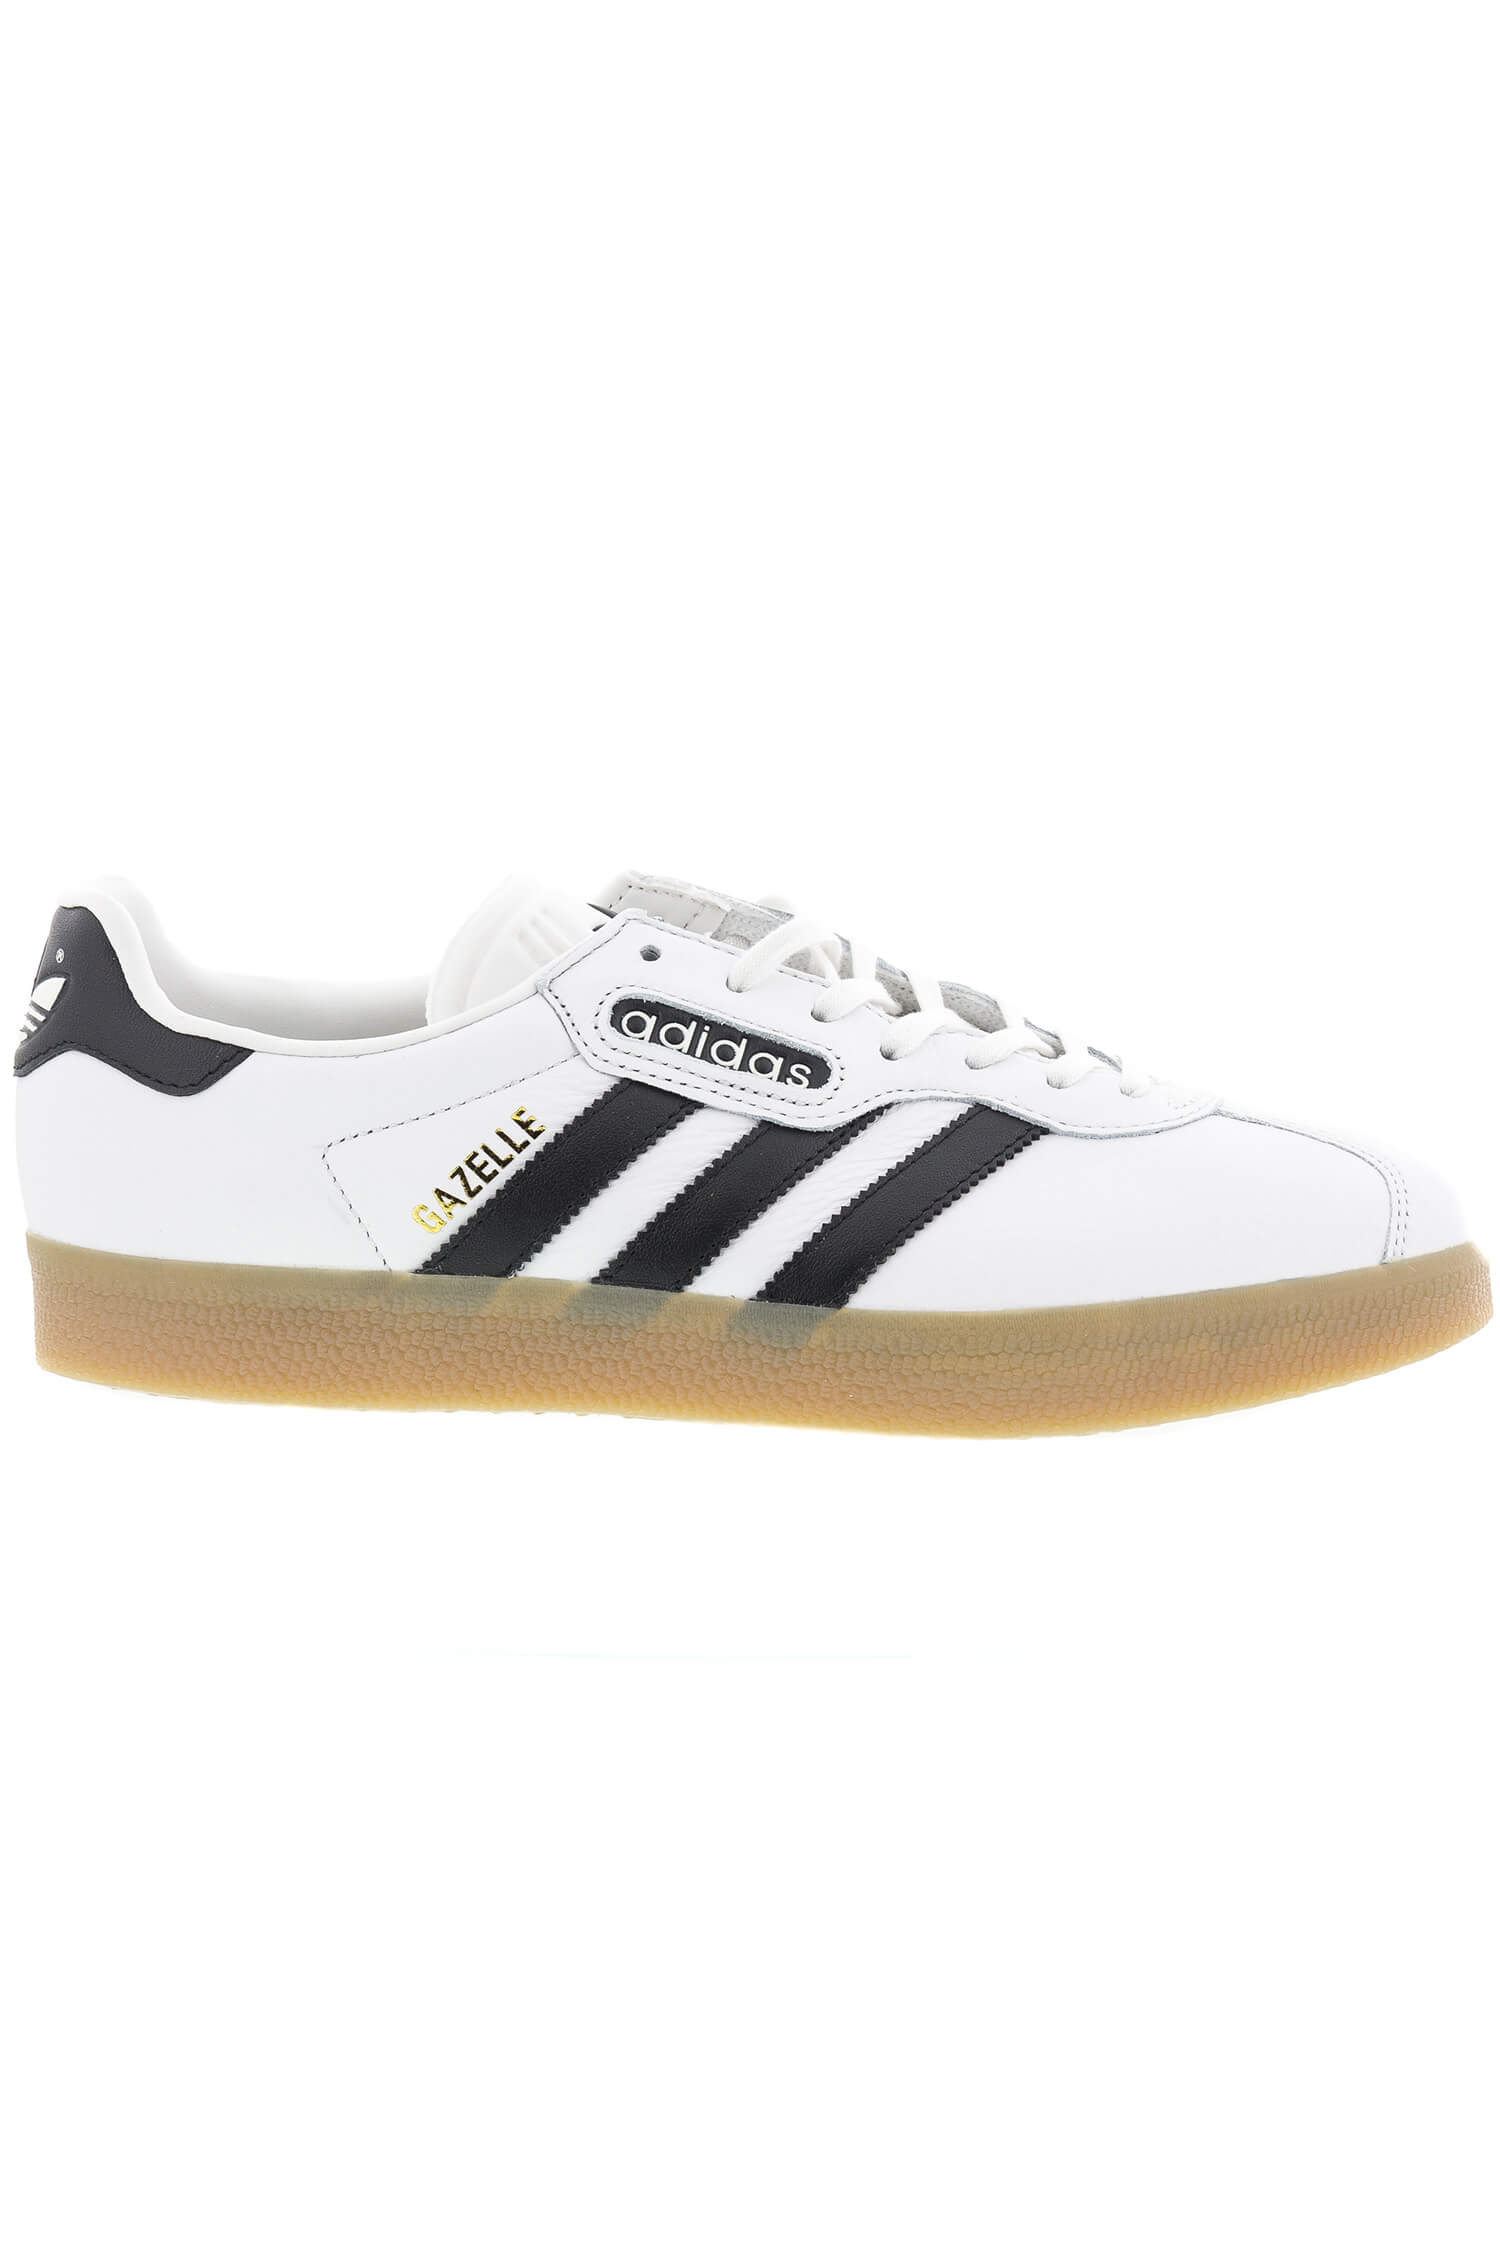 Adidas Originals / Gazelle Super Homme ...